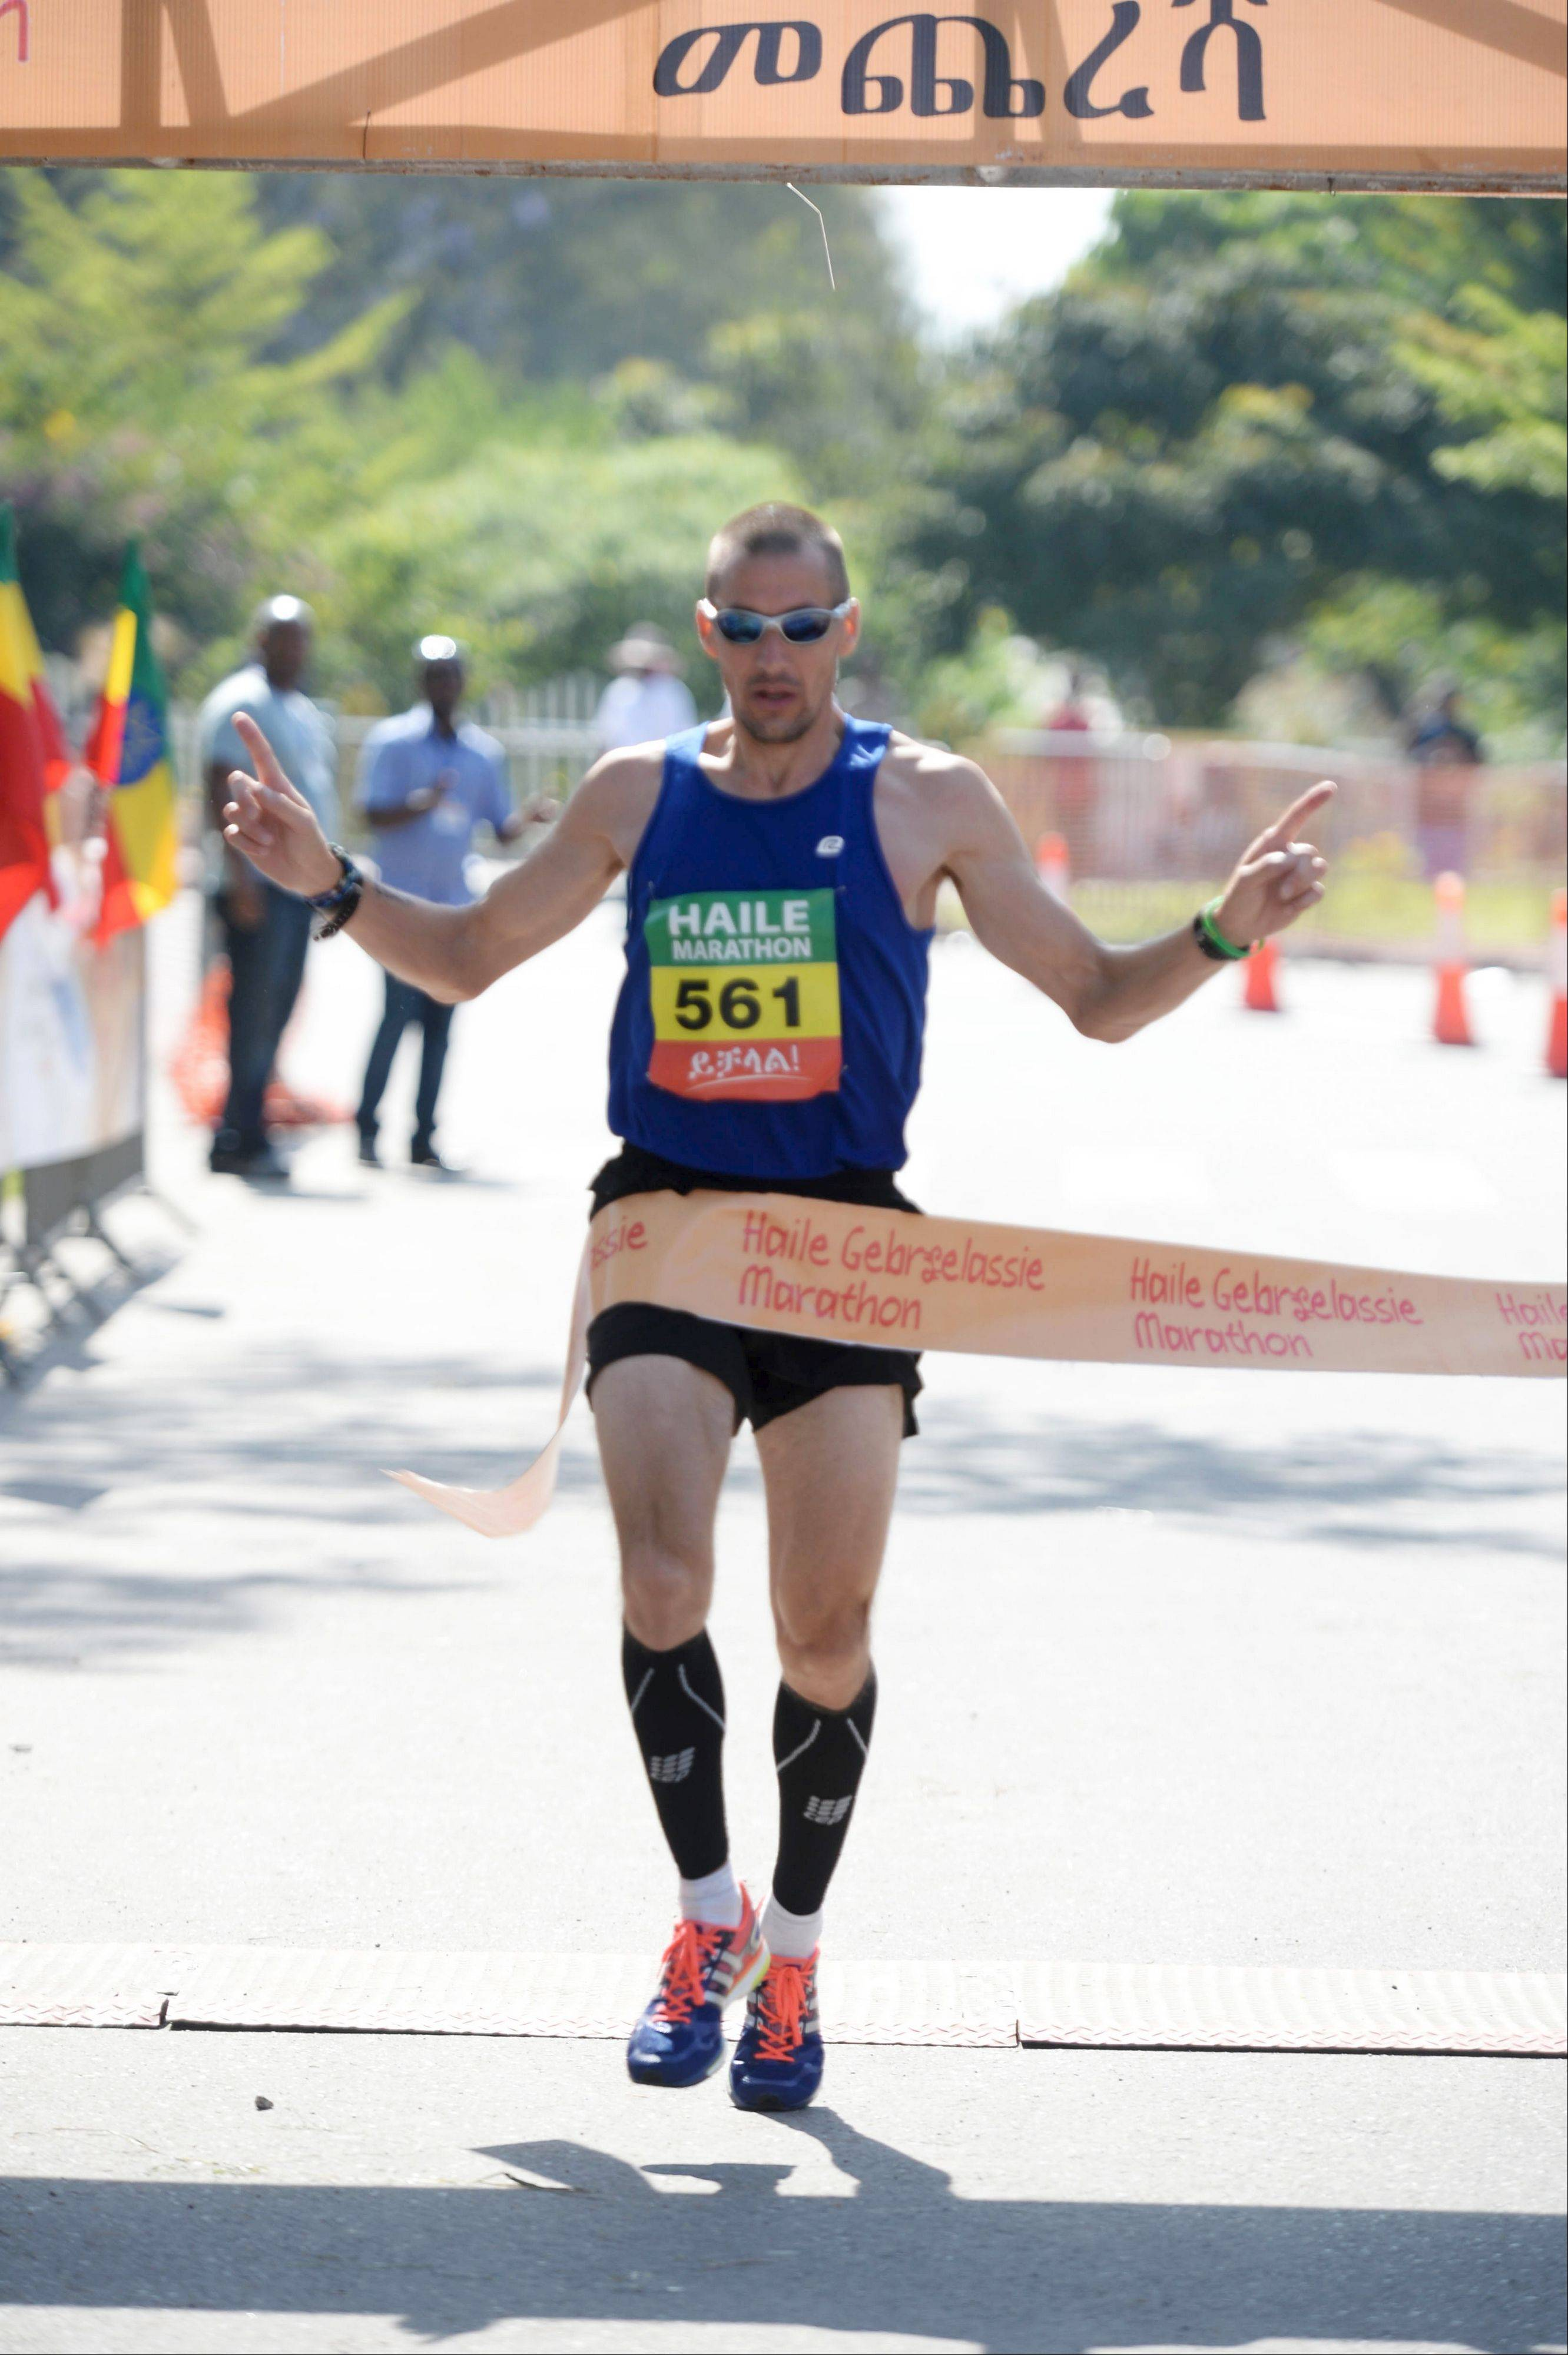 Jason Doland, of Inverness, crosses the finish line at the inaugural Haile Gebrselassie Marathon Oct. 20 in Ethiopia.